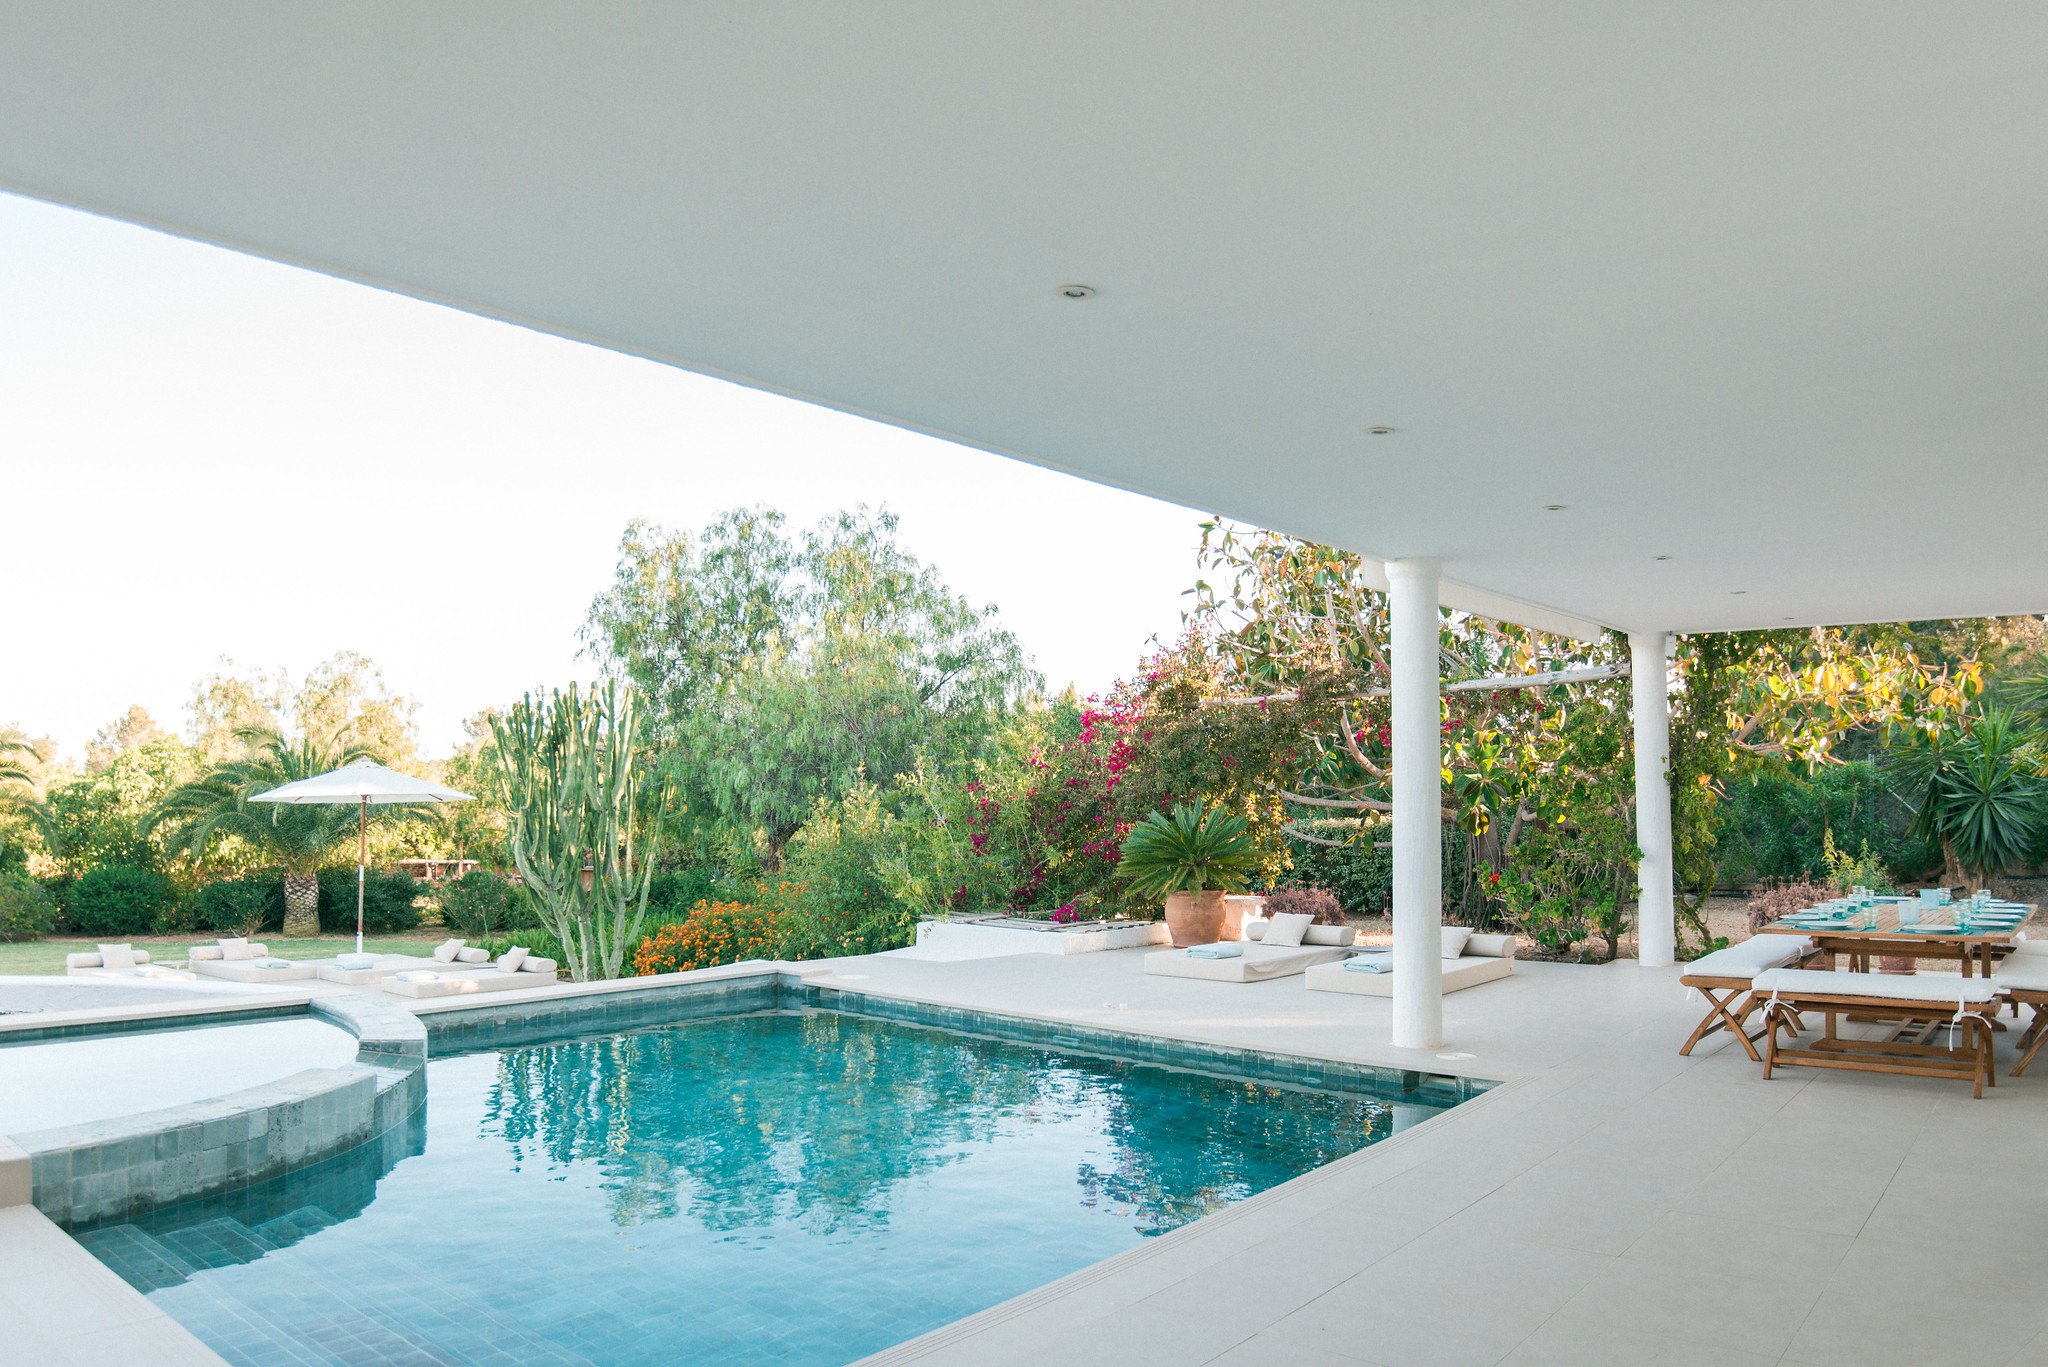 https://www.white-ibiza.com/wp-content/uploads/2020/06/white-ibiza-villas-casa-odette-exterior-pool-from-house.jpg